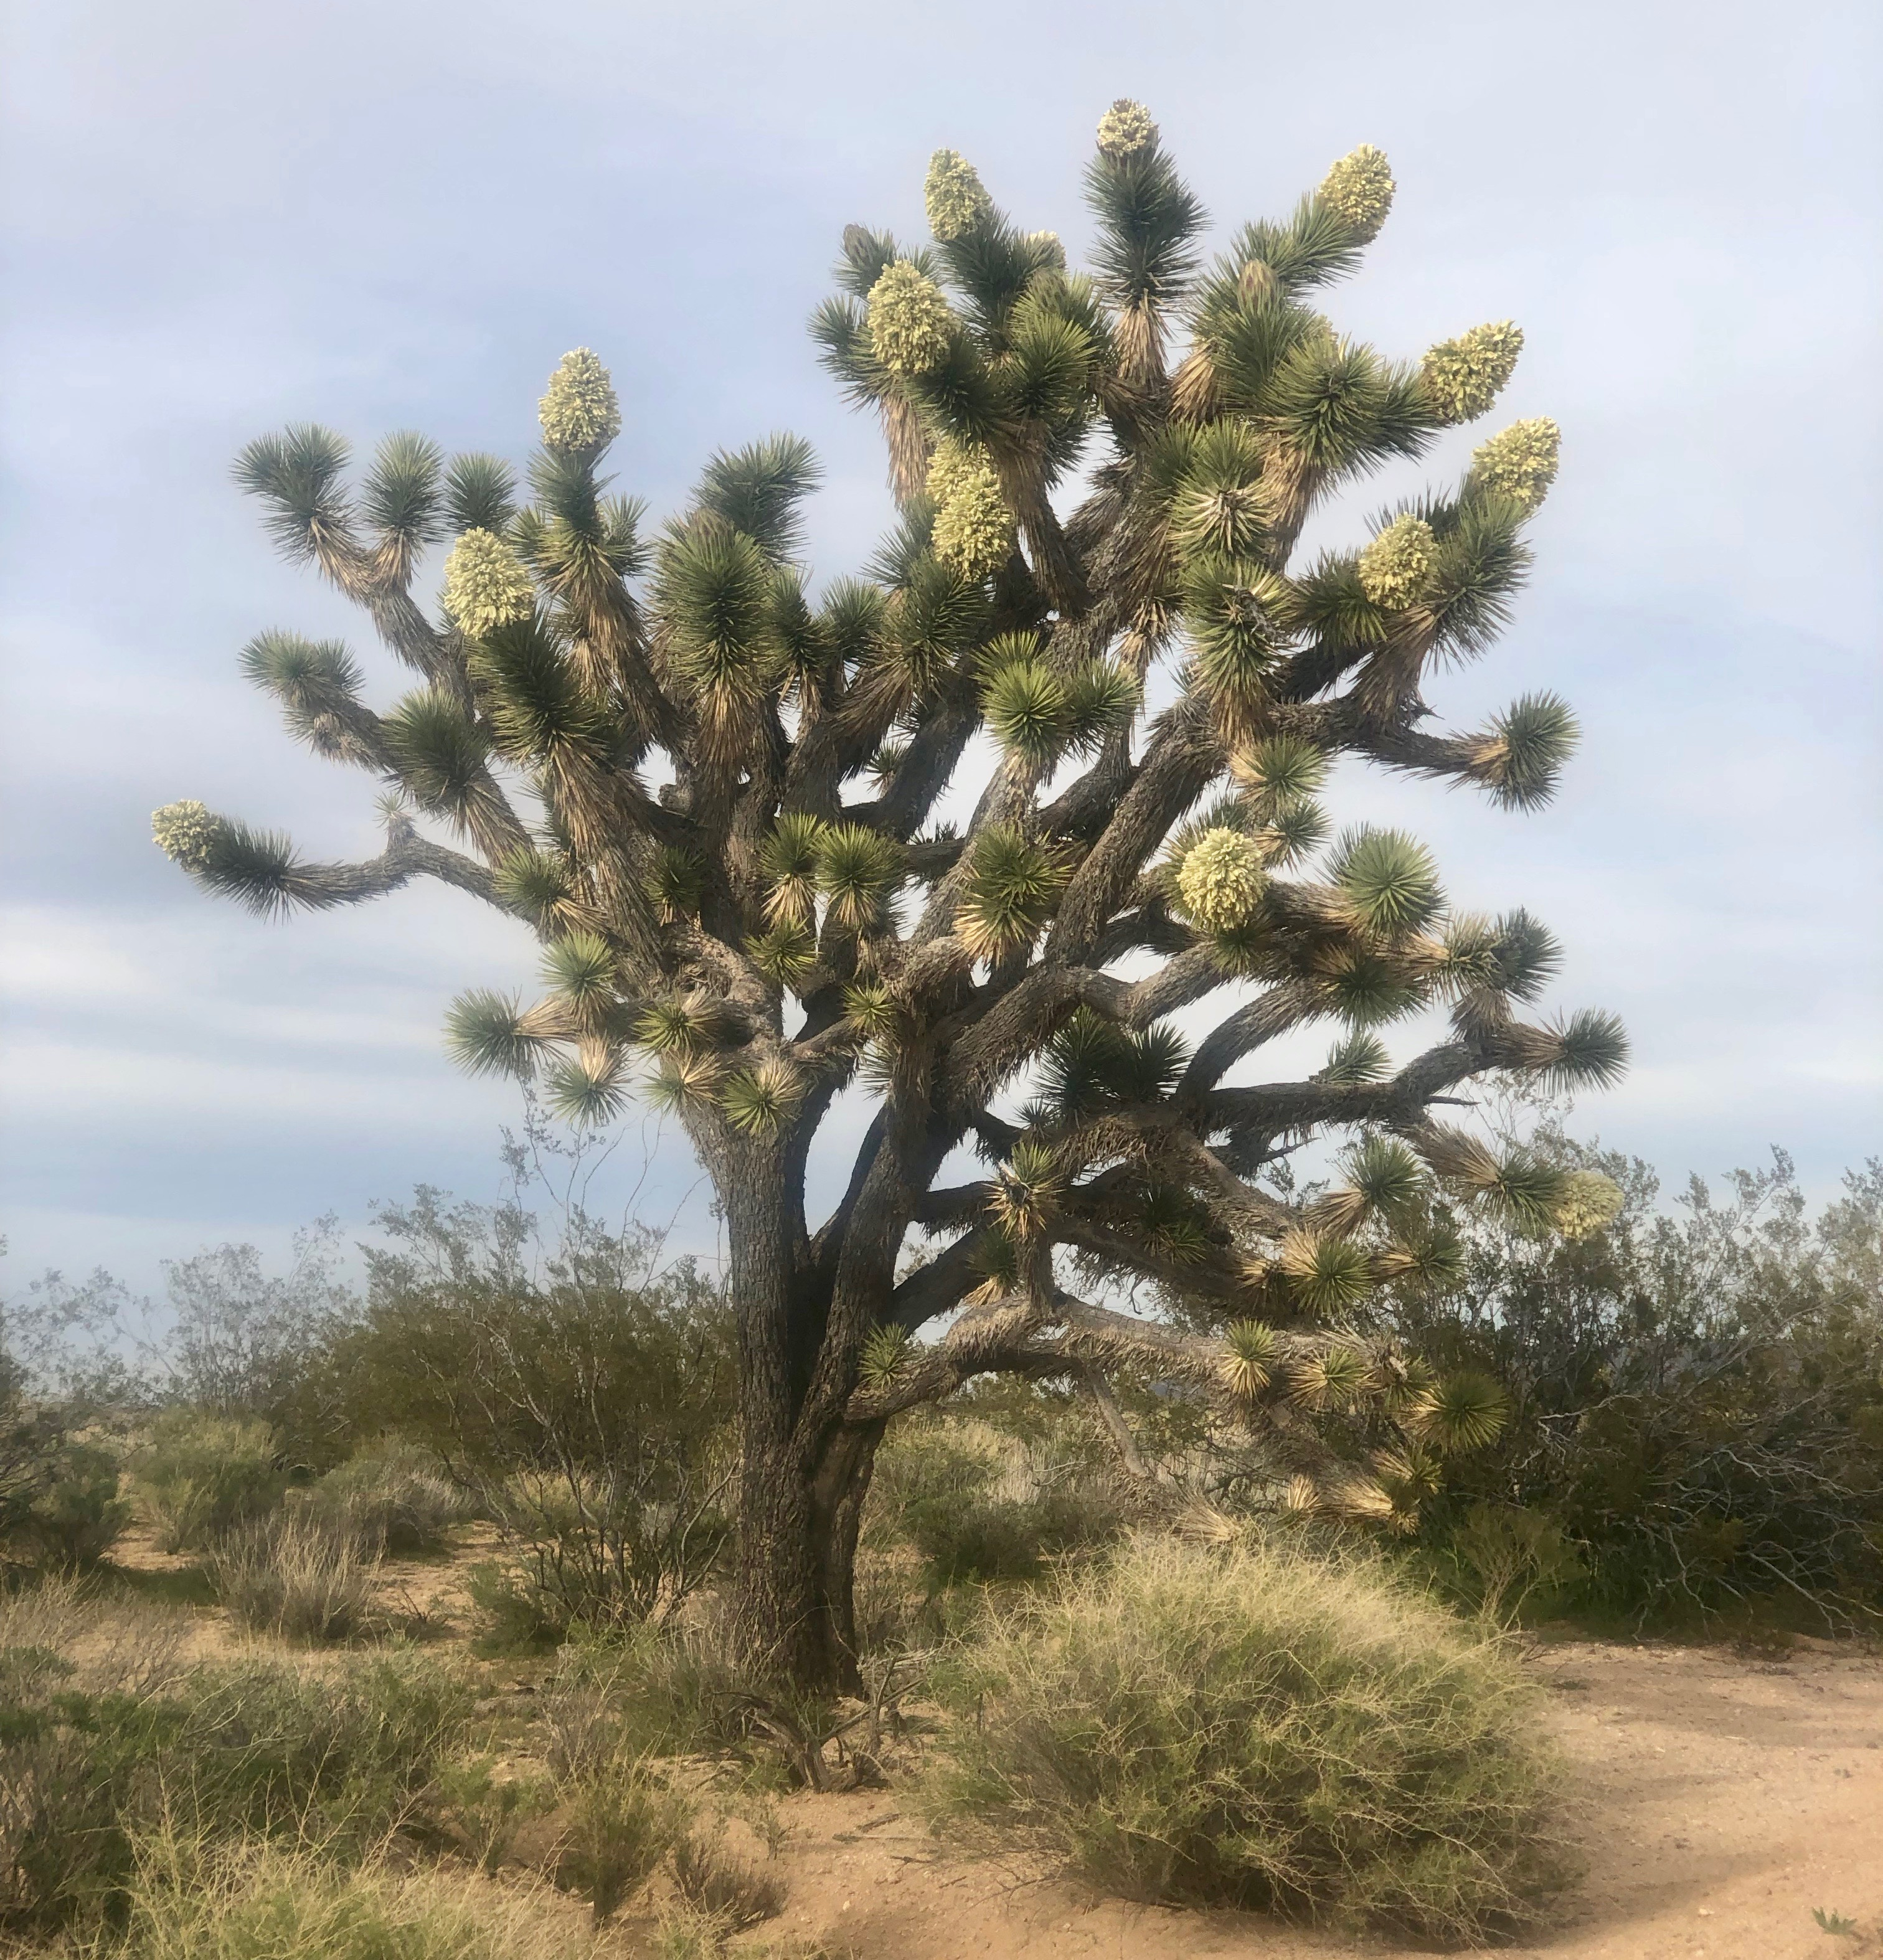 Some of the Joshua trees were in  bloom.